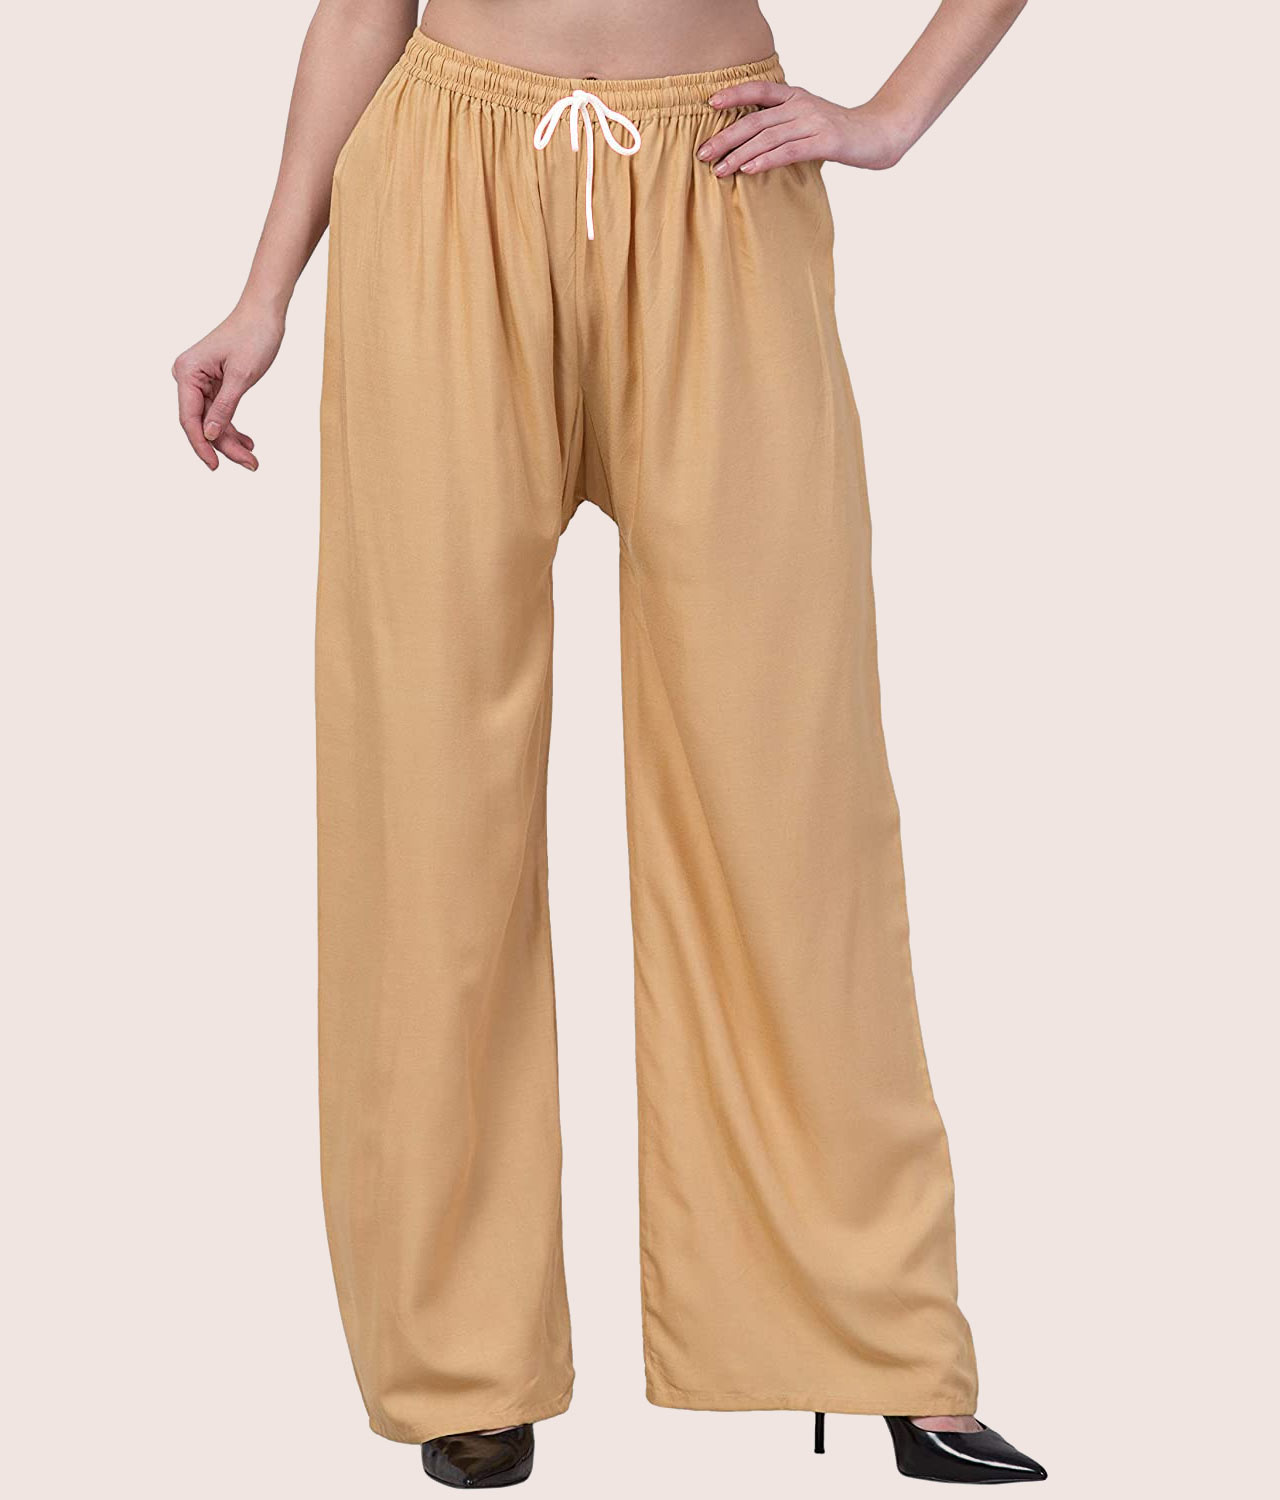 Buy Beige Rayon Palazzo Pants At Just 149/- | Limited Offers